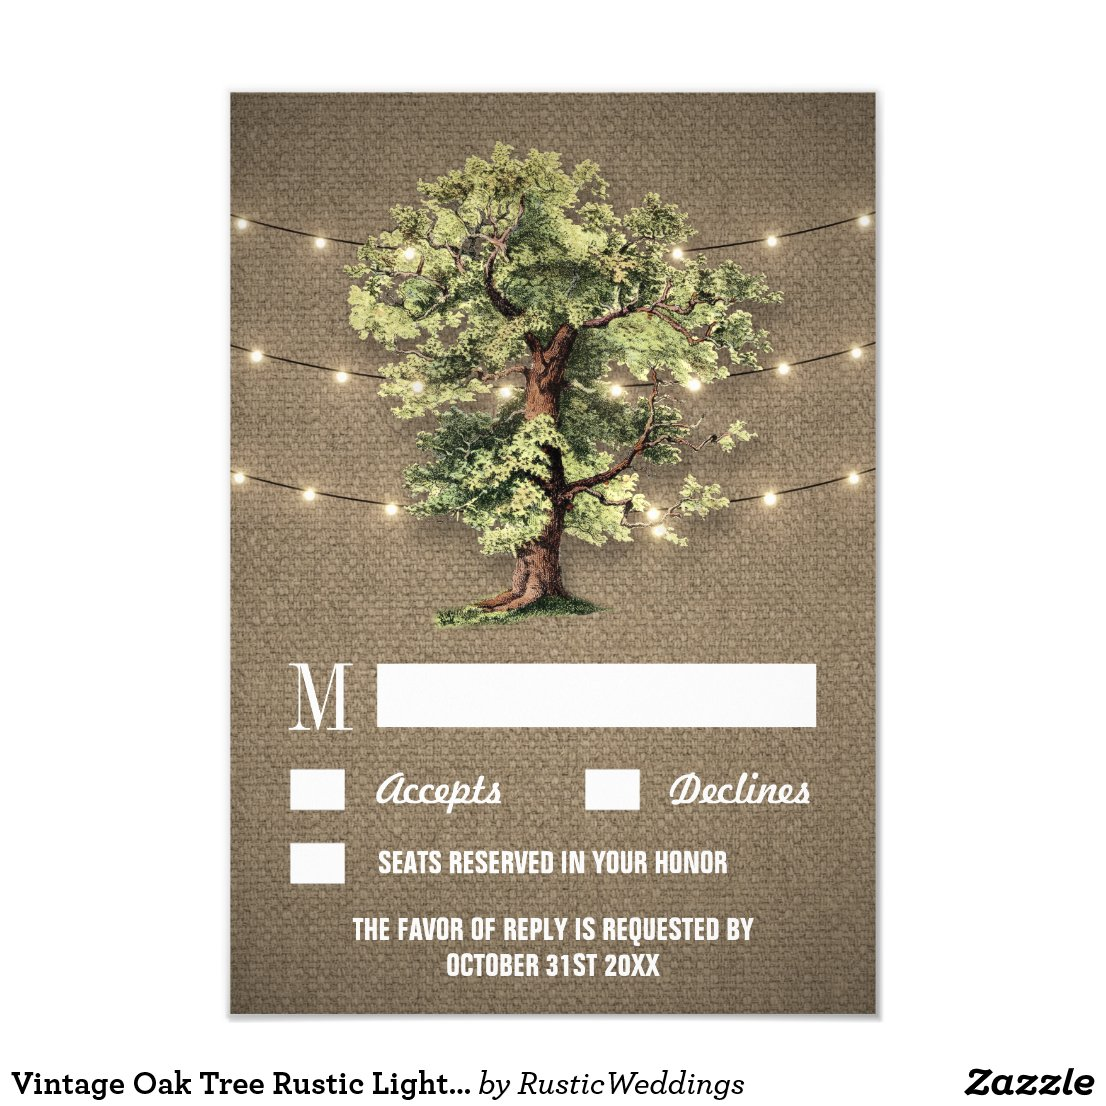 Vintage Oak Tree Rustic Lights Wedding RSVP Cards